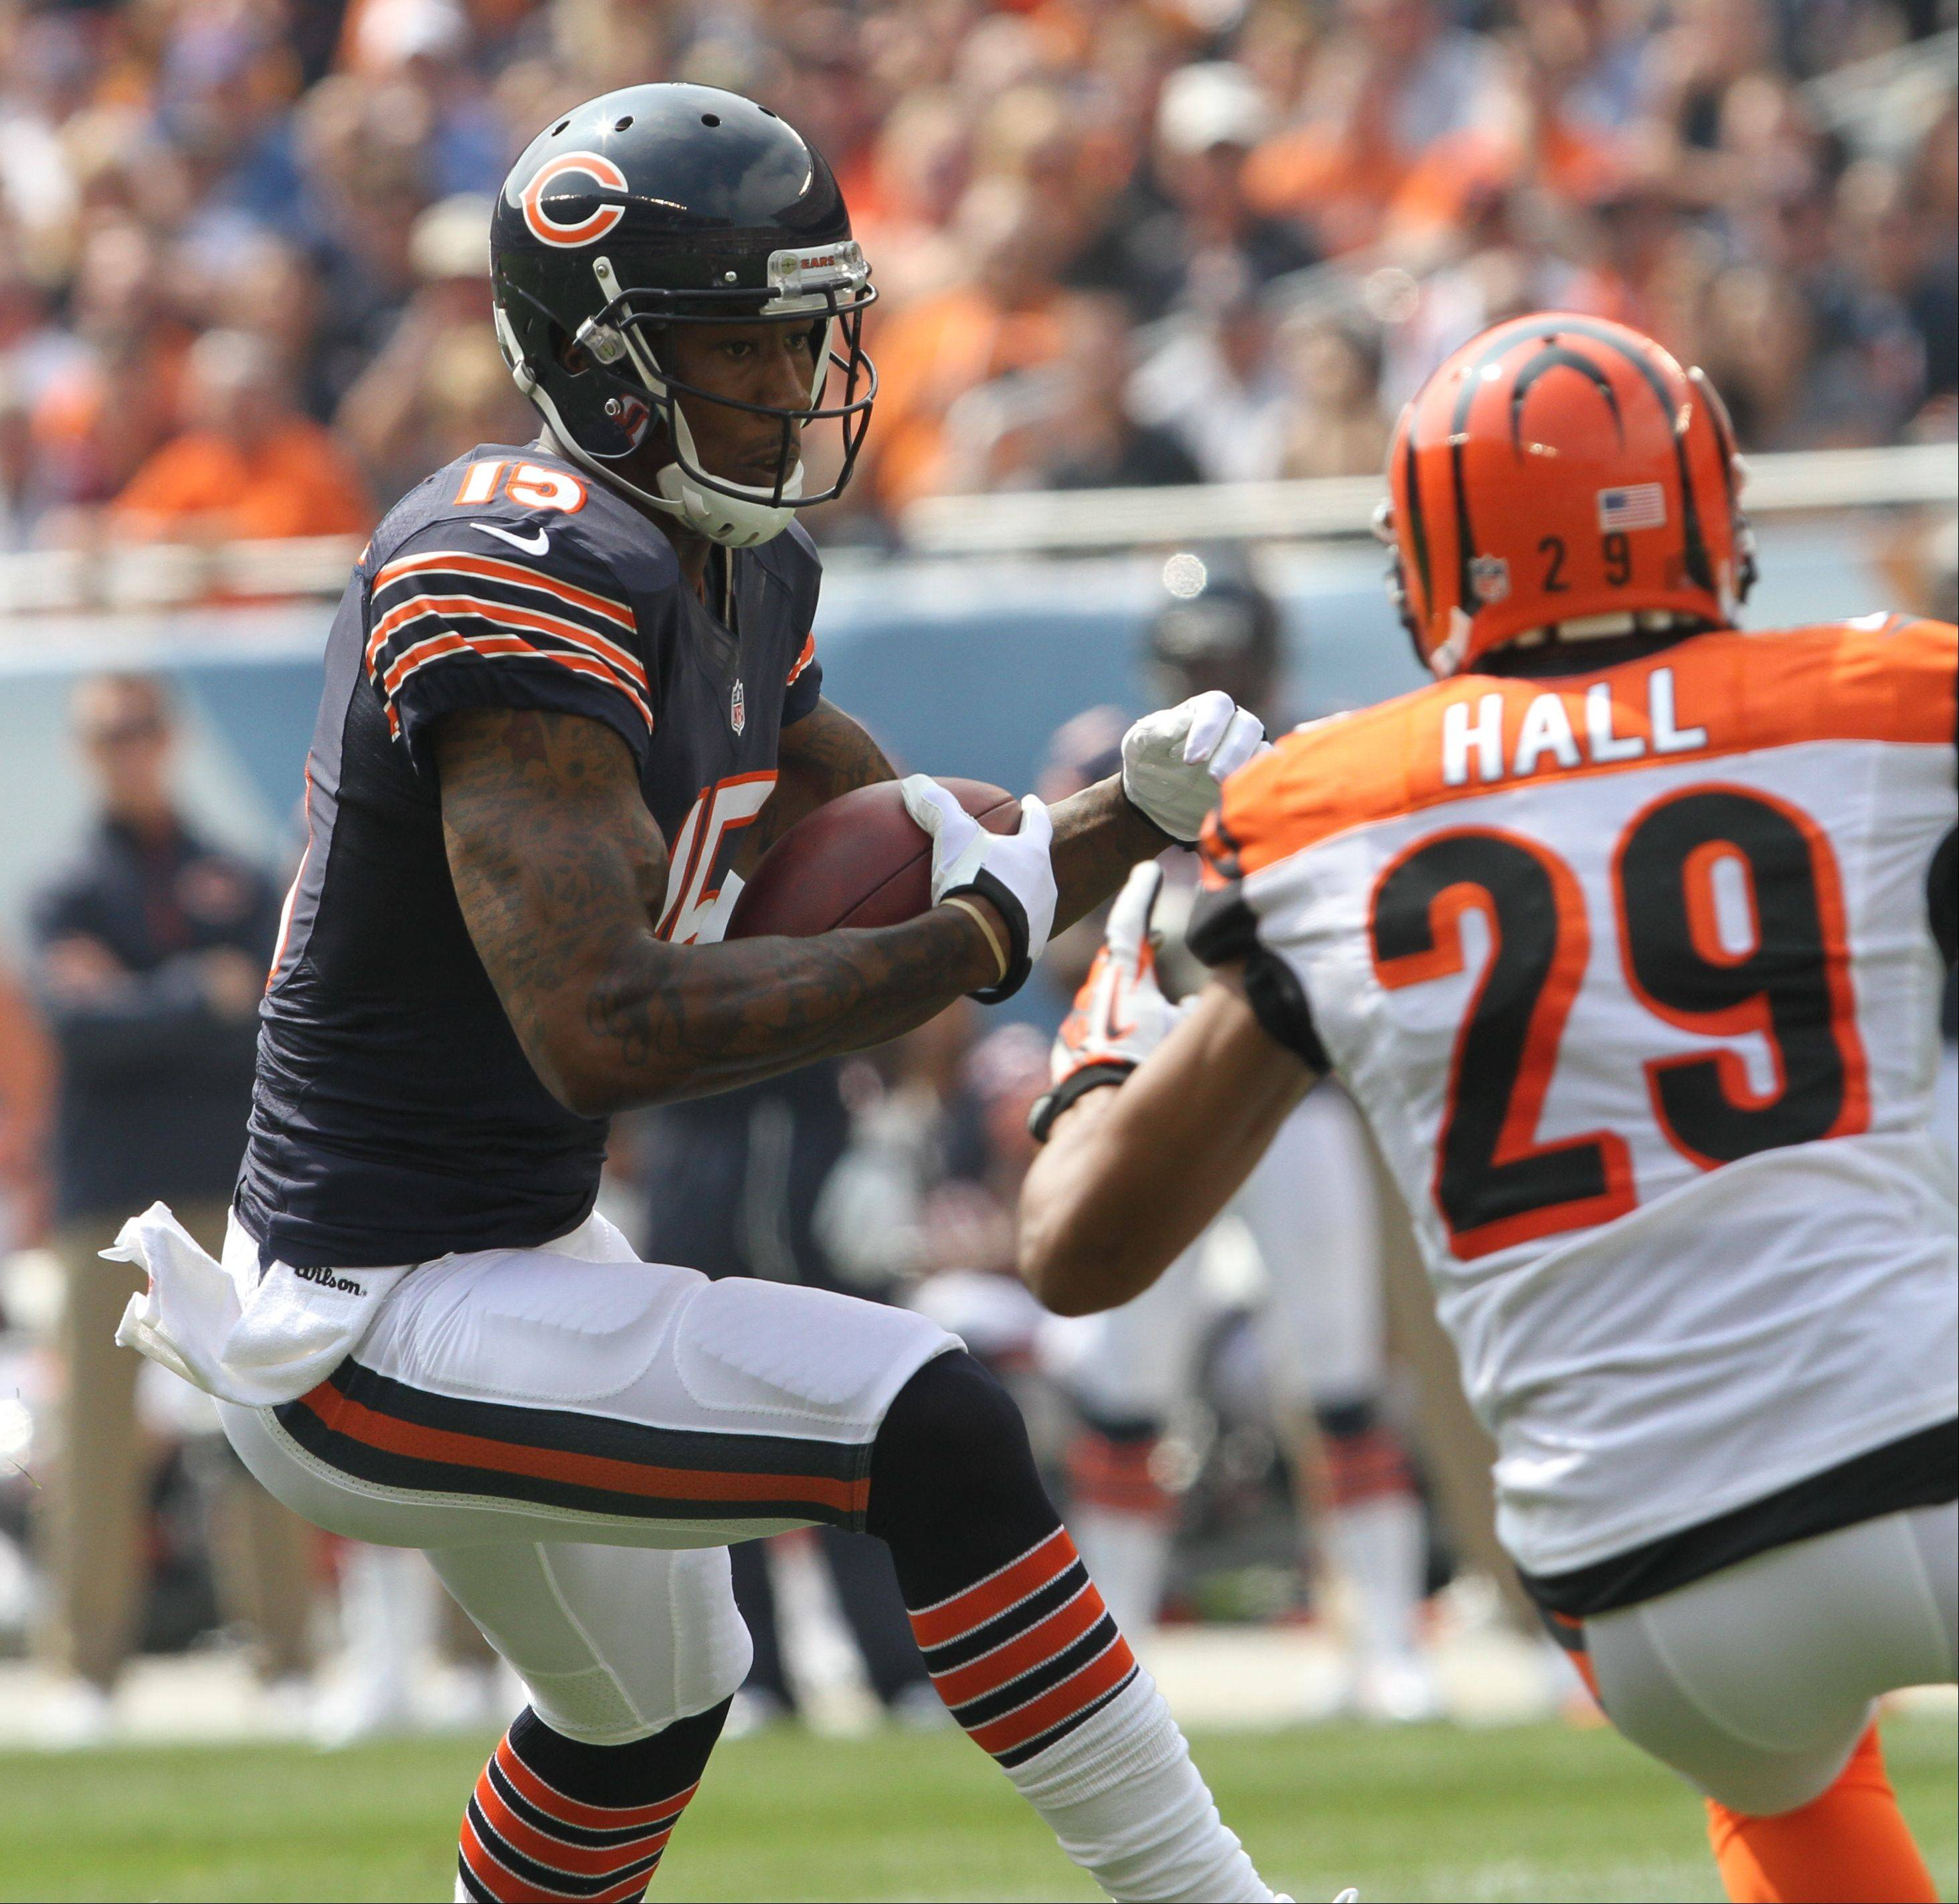 Chicago Bears wide receiver Brandon Marshall runs after a catch during their opening day game against the Cincinnati Bengals Sunday at Soldier Field in Chicago.